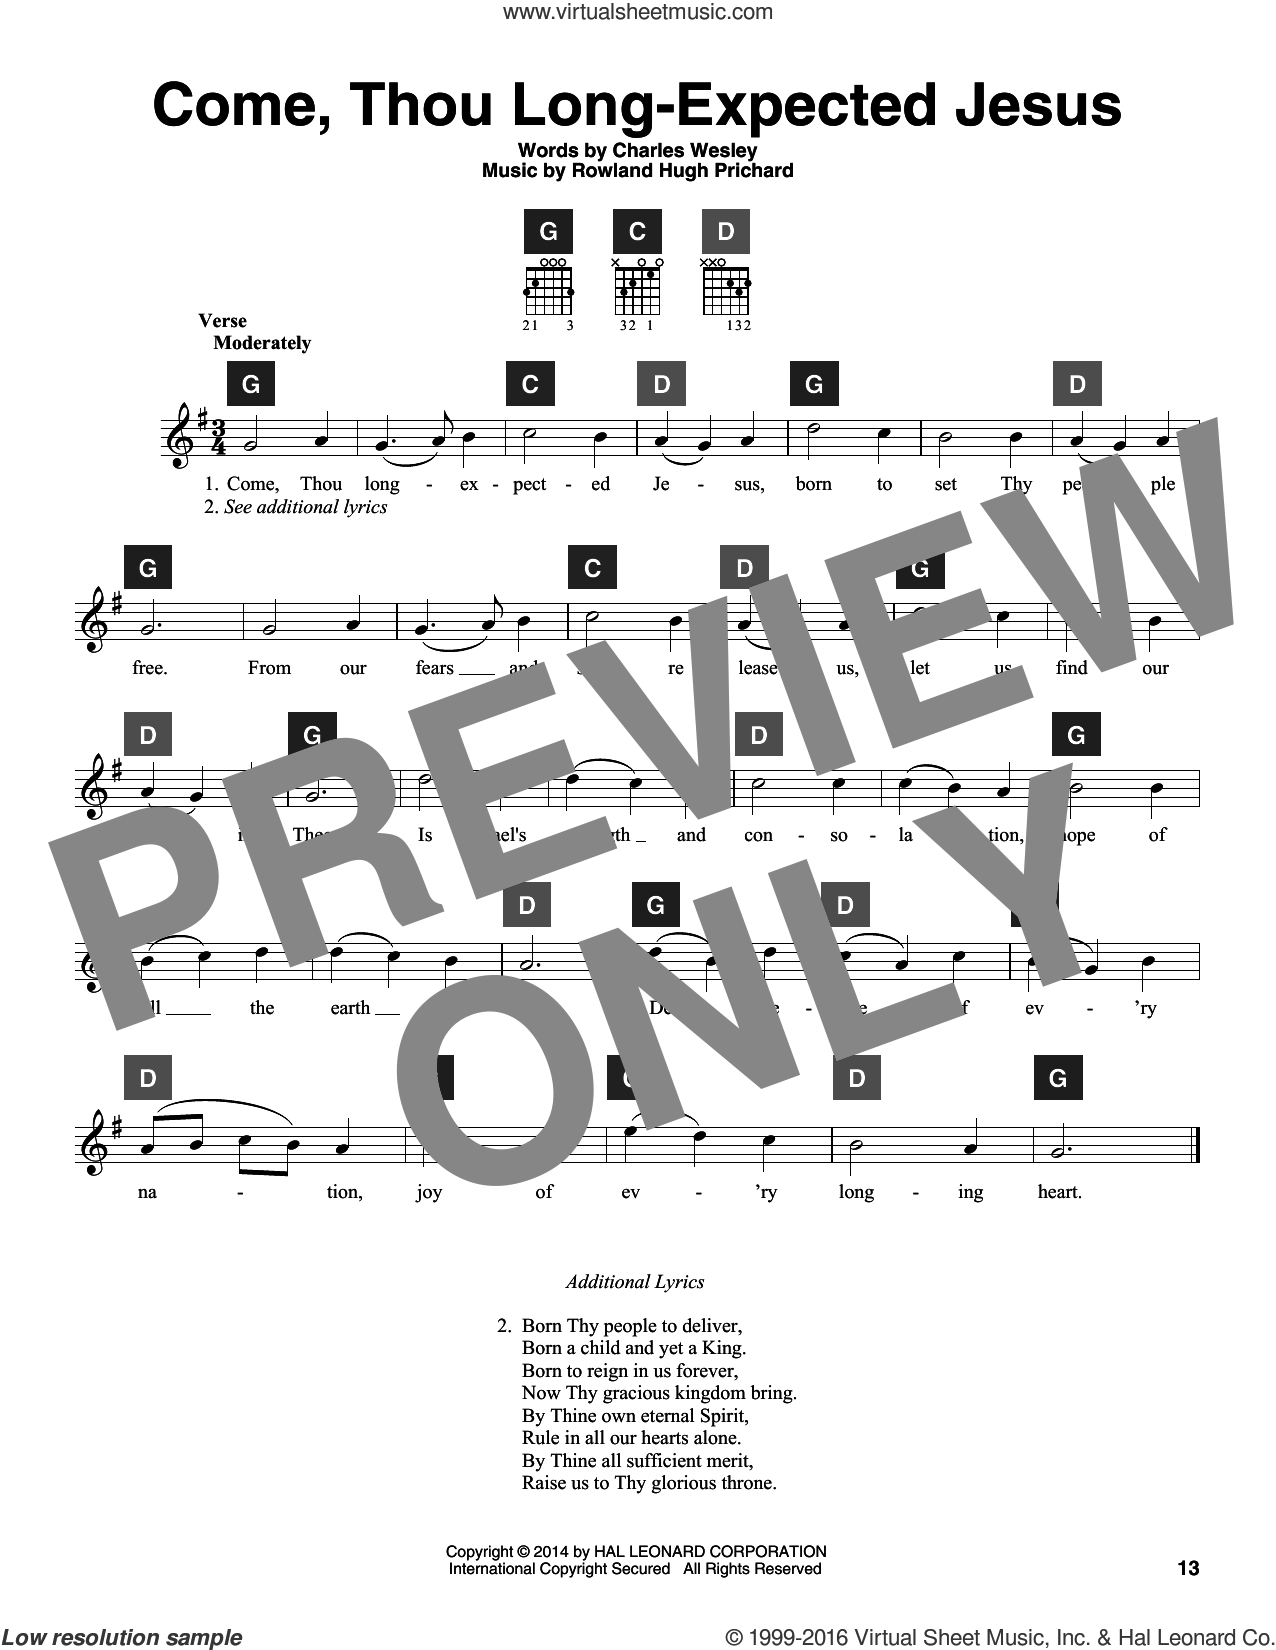 Come, Thou Long-Expected Jesus sheet music for guitar solo (ChordBuddy system) by Charles Wesley, Travis Perry and Rowland Prichard, intermediate guitar (ChordBuddy system)